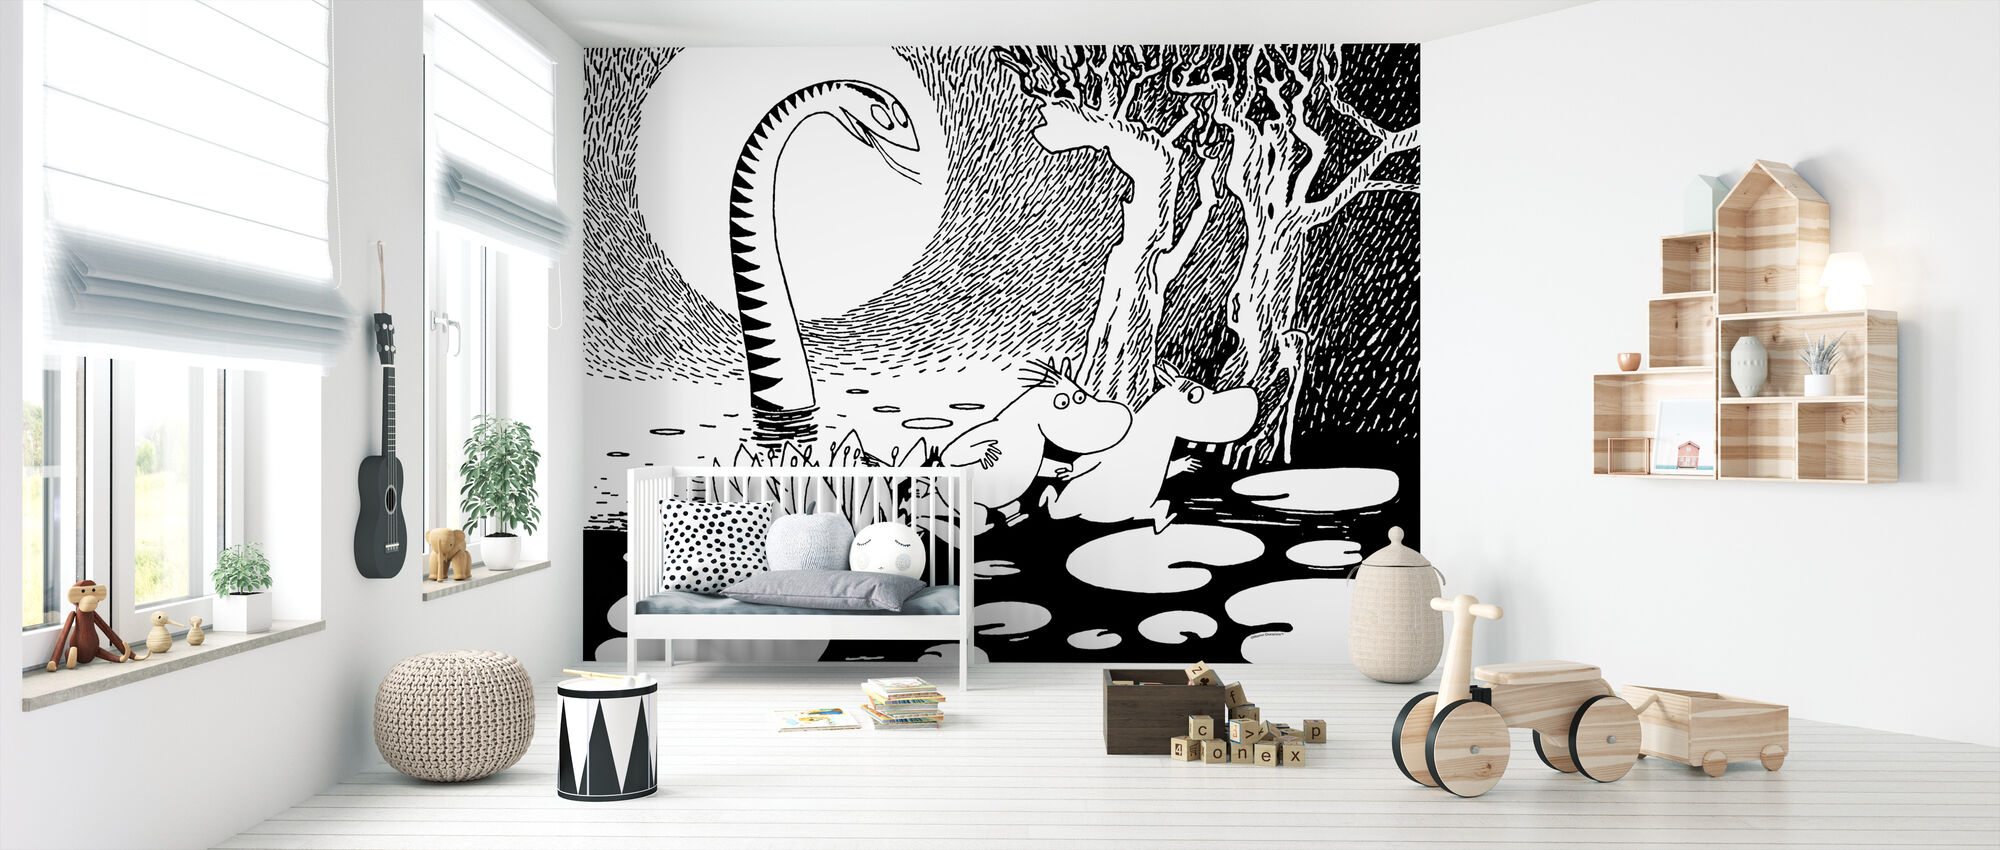 Moomin and Snorkmaiden and the Giant Snake - Wallpaper - Nursery